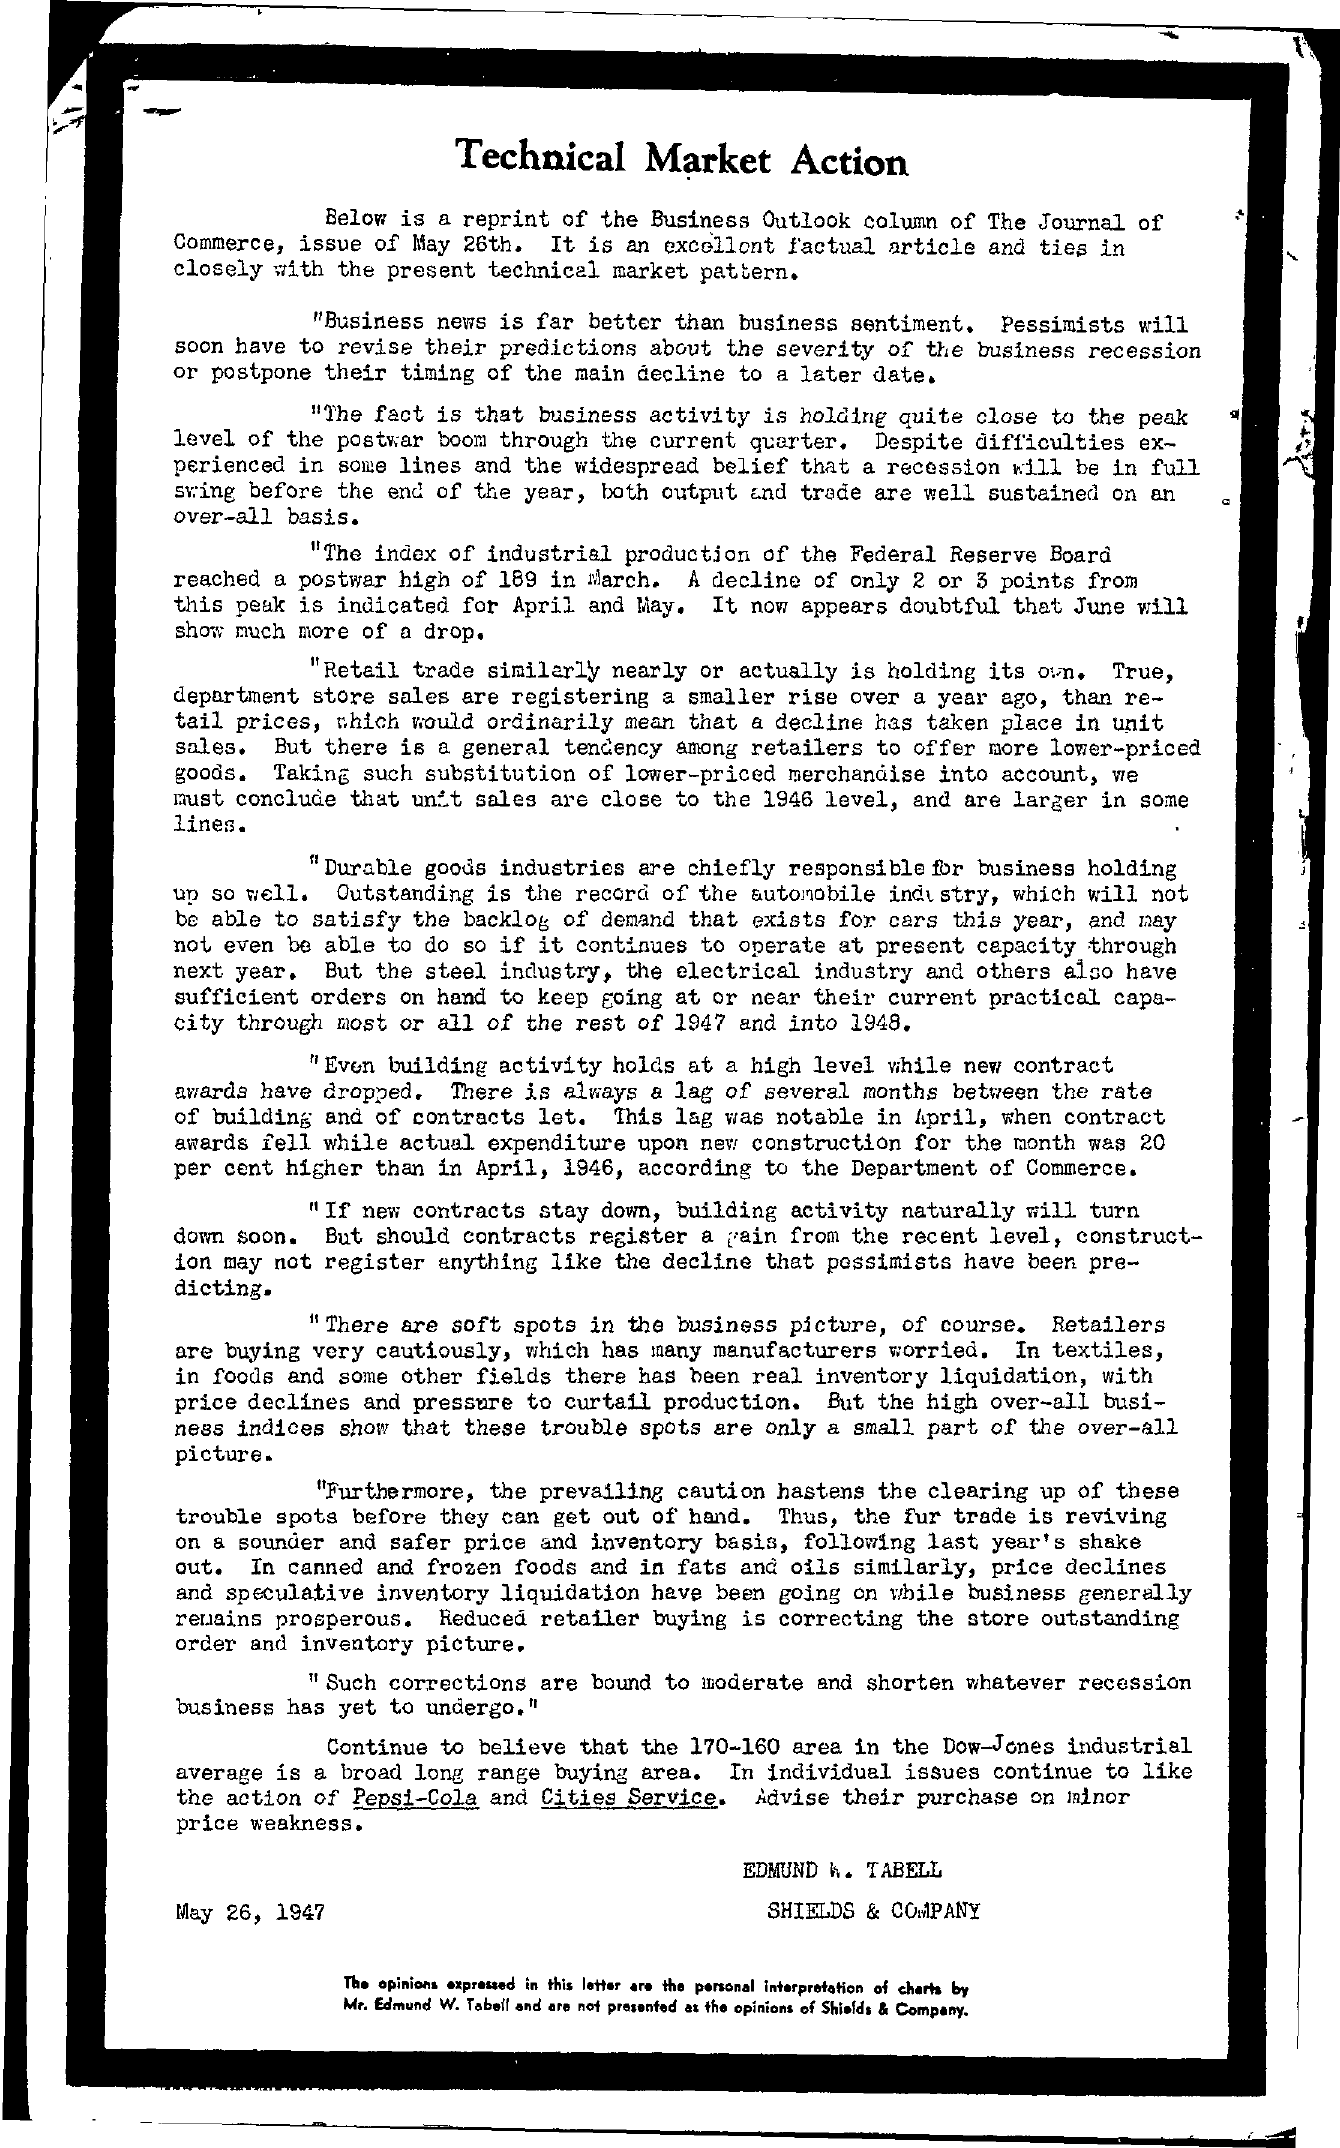 Tabell's Market Letter - May 26, 1947